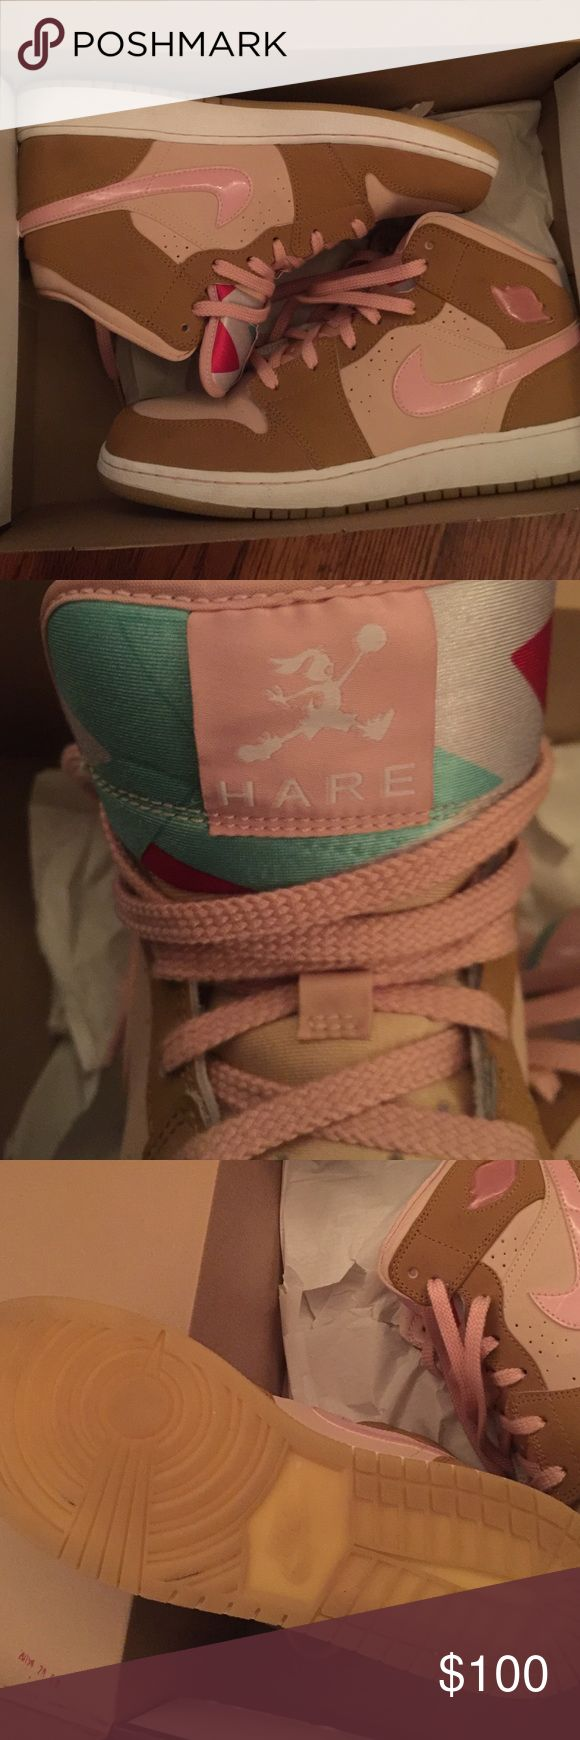 Retro Nike Jordan Hare 2 y 7 Previously worn, well preserved, 100% authentic Jordan Hare 1 in pink/wheat. Box included. Jordan Shoes Athletic Shoes